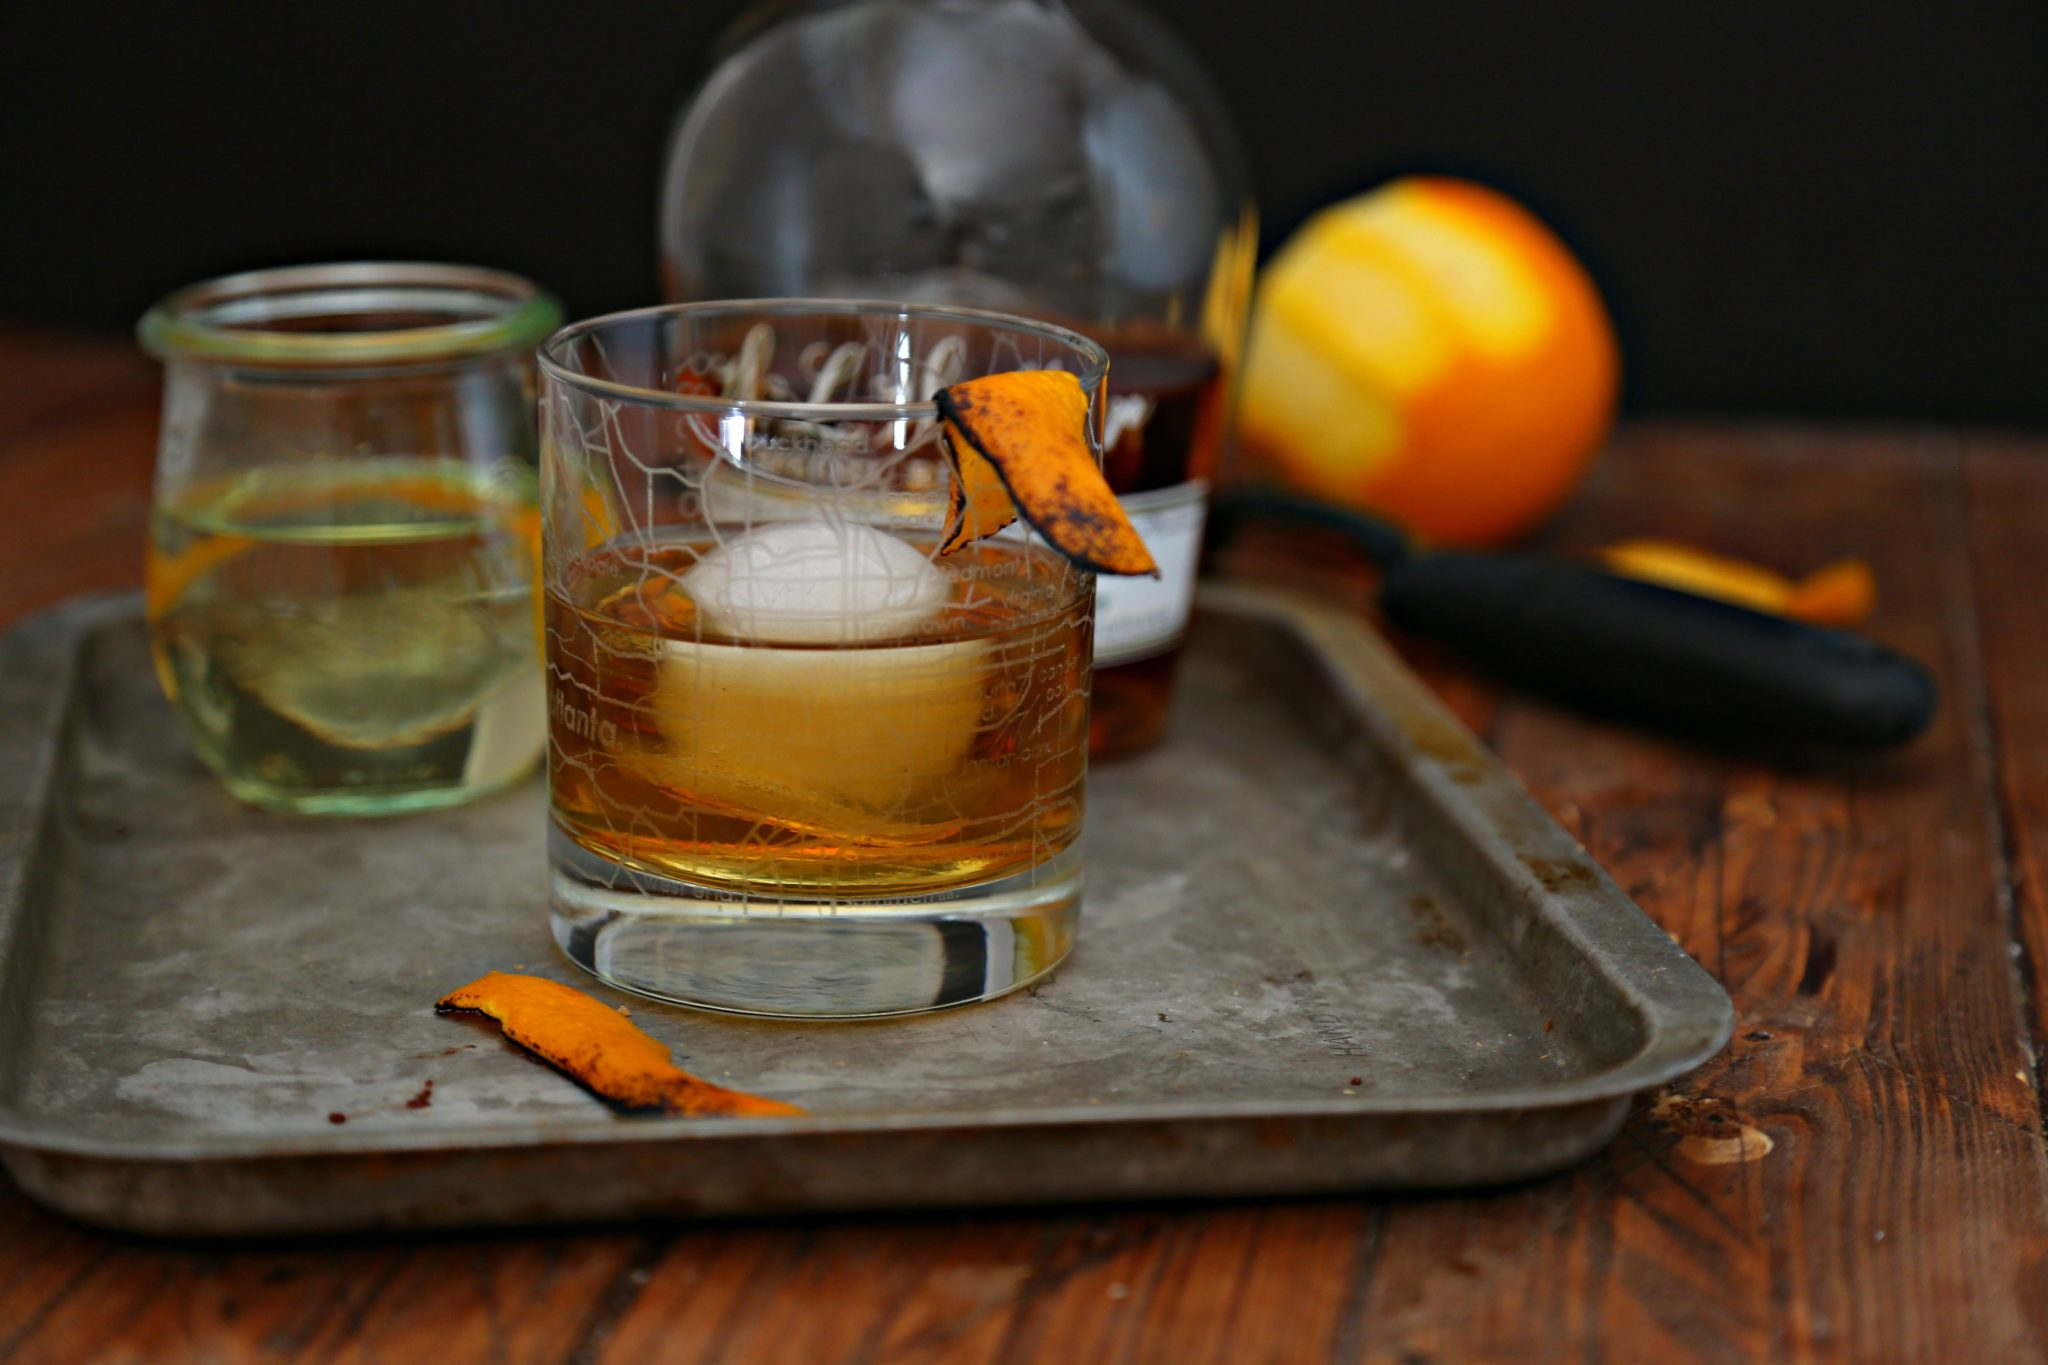 How To Make Simple Syrup For Old Fashions